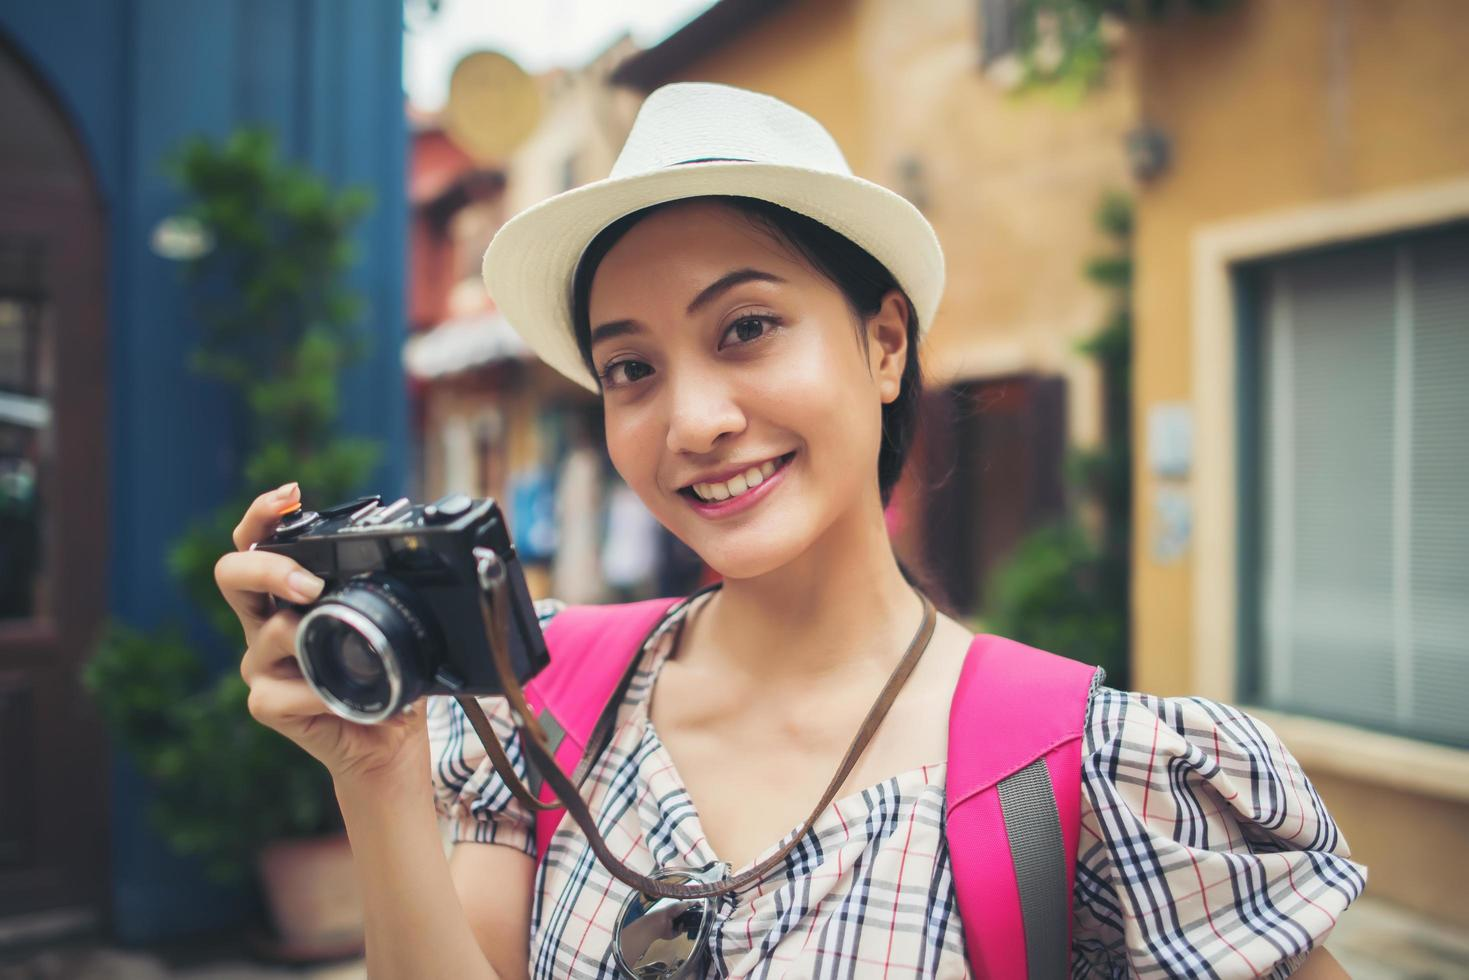 Close-up of a young hipster woman backpacking in urban city photo